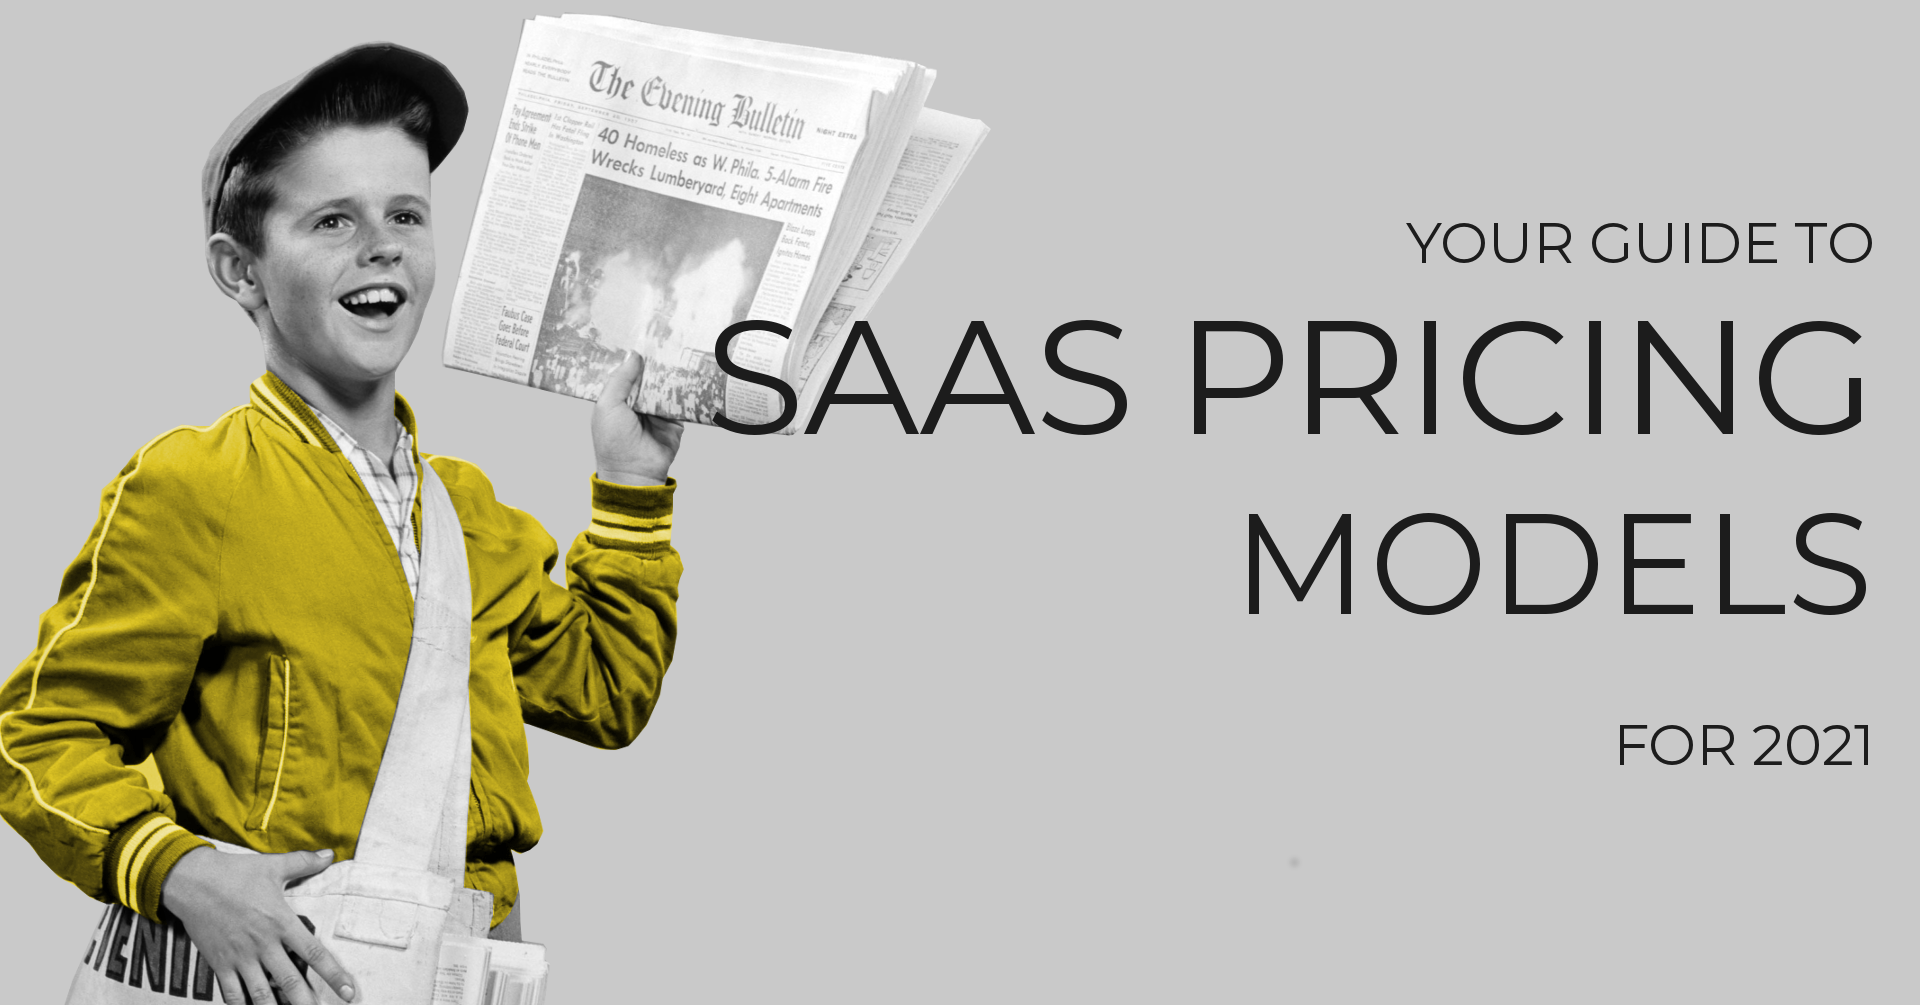 Your Guide to SaaS Pricing Models For 2021